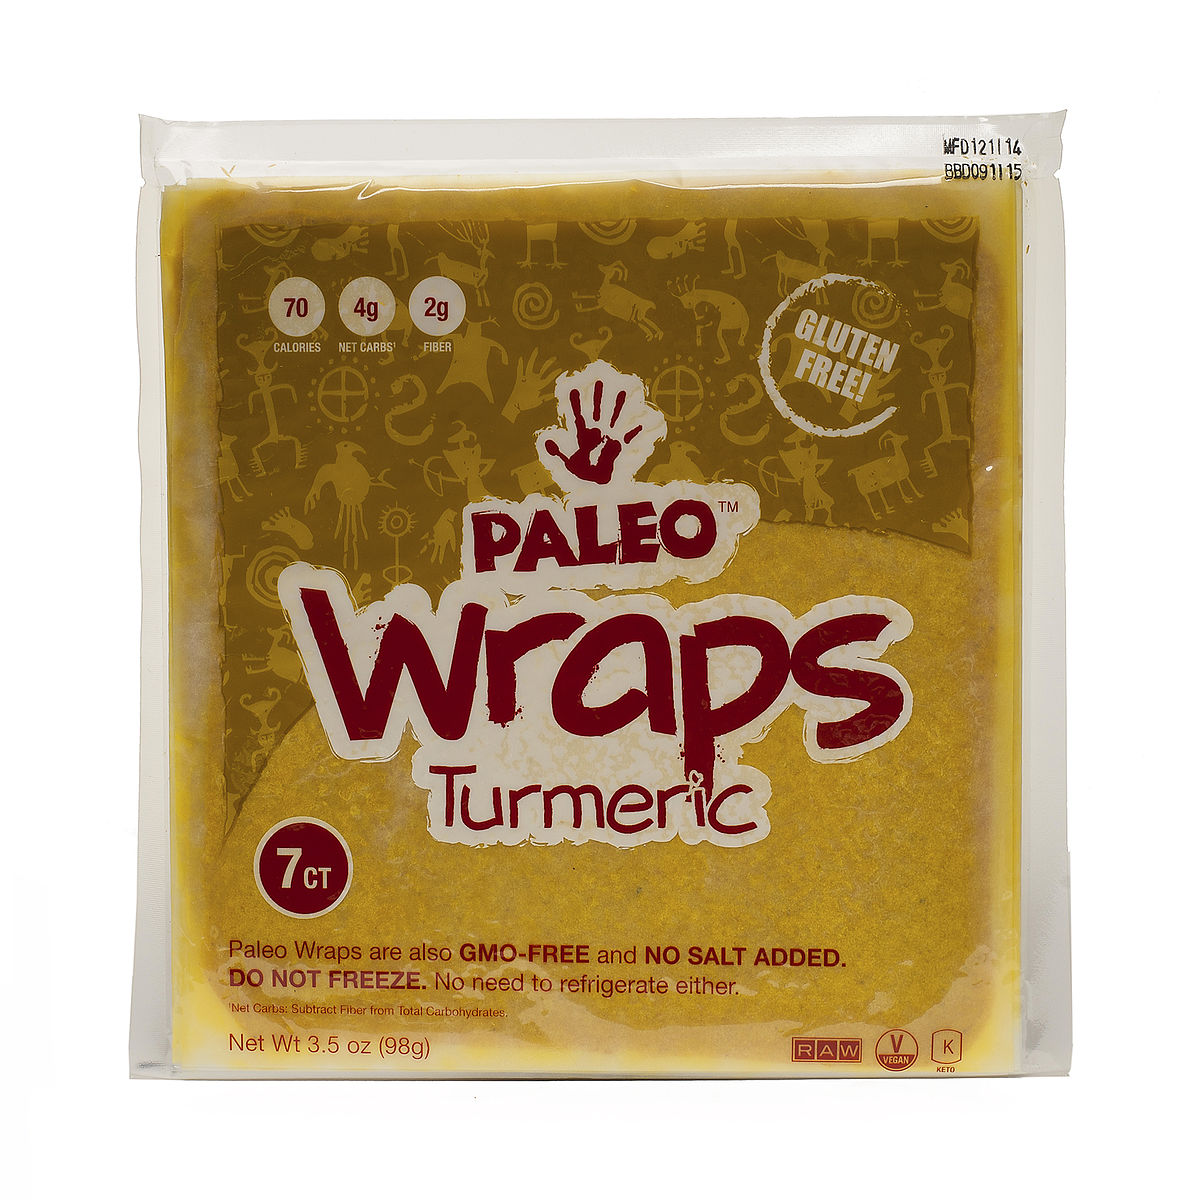 Julian Bakery PALEO WRAPS, TURMERIC from Thrive Market